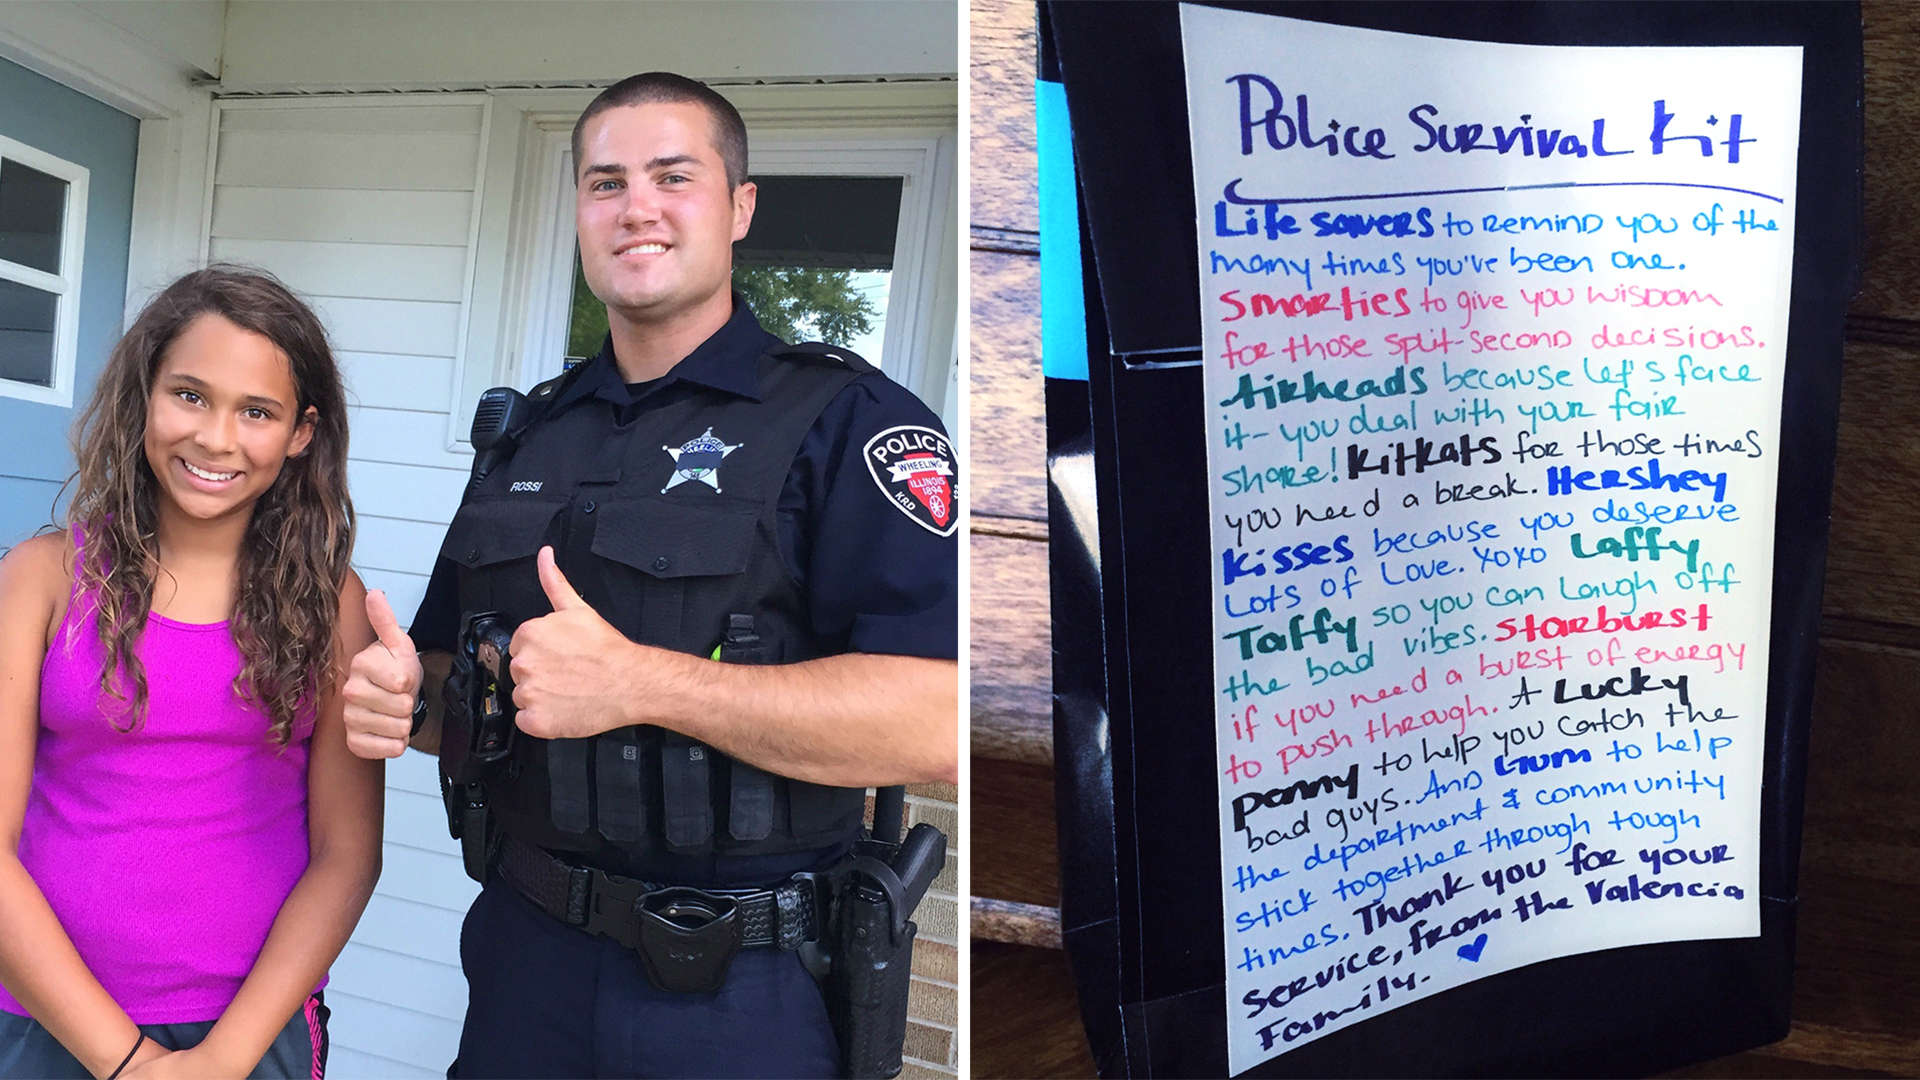 Deals for police officers